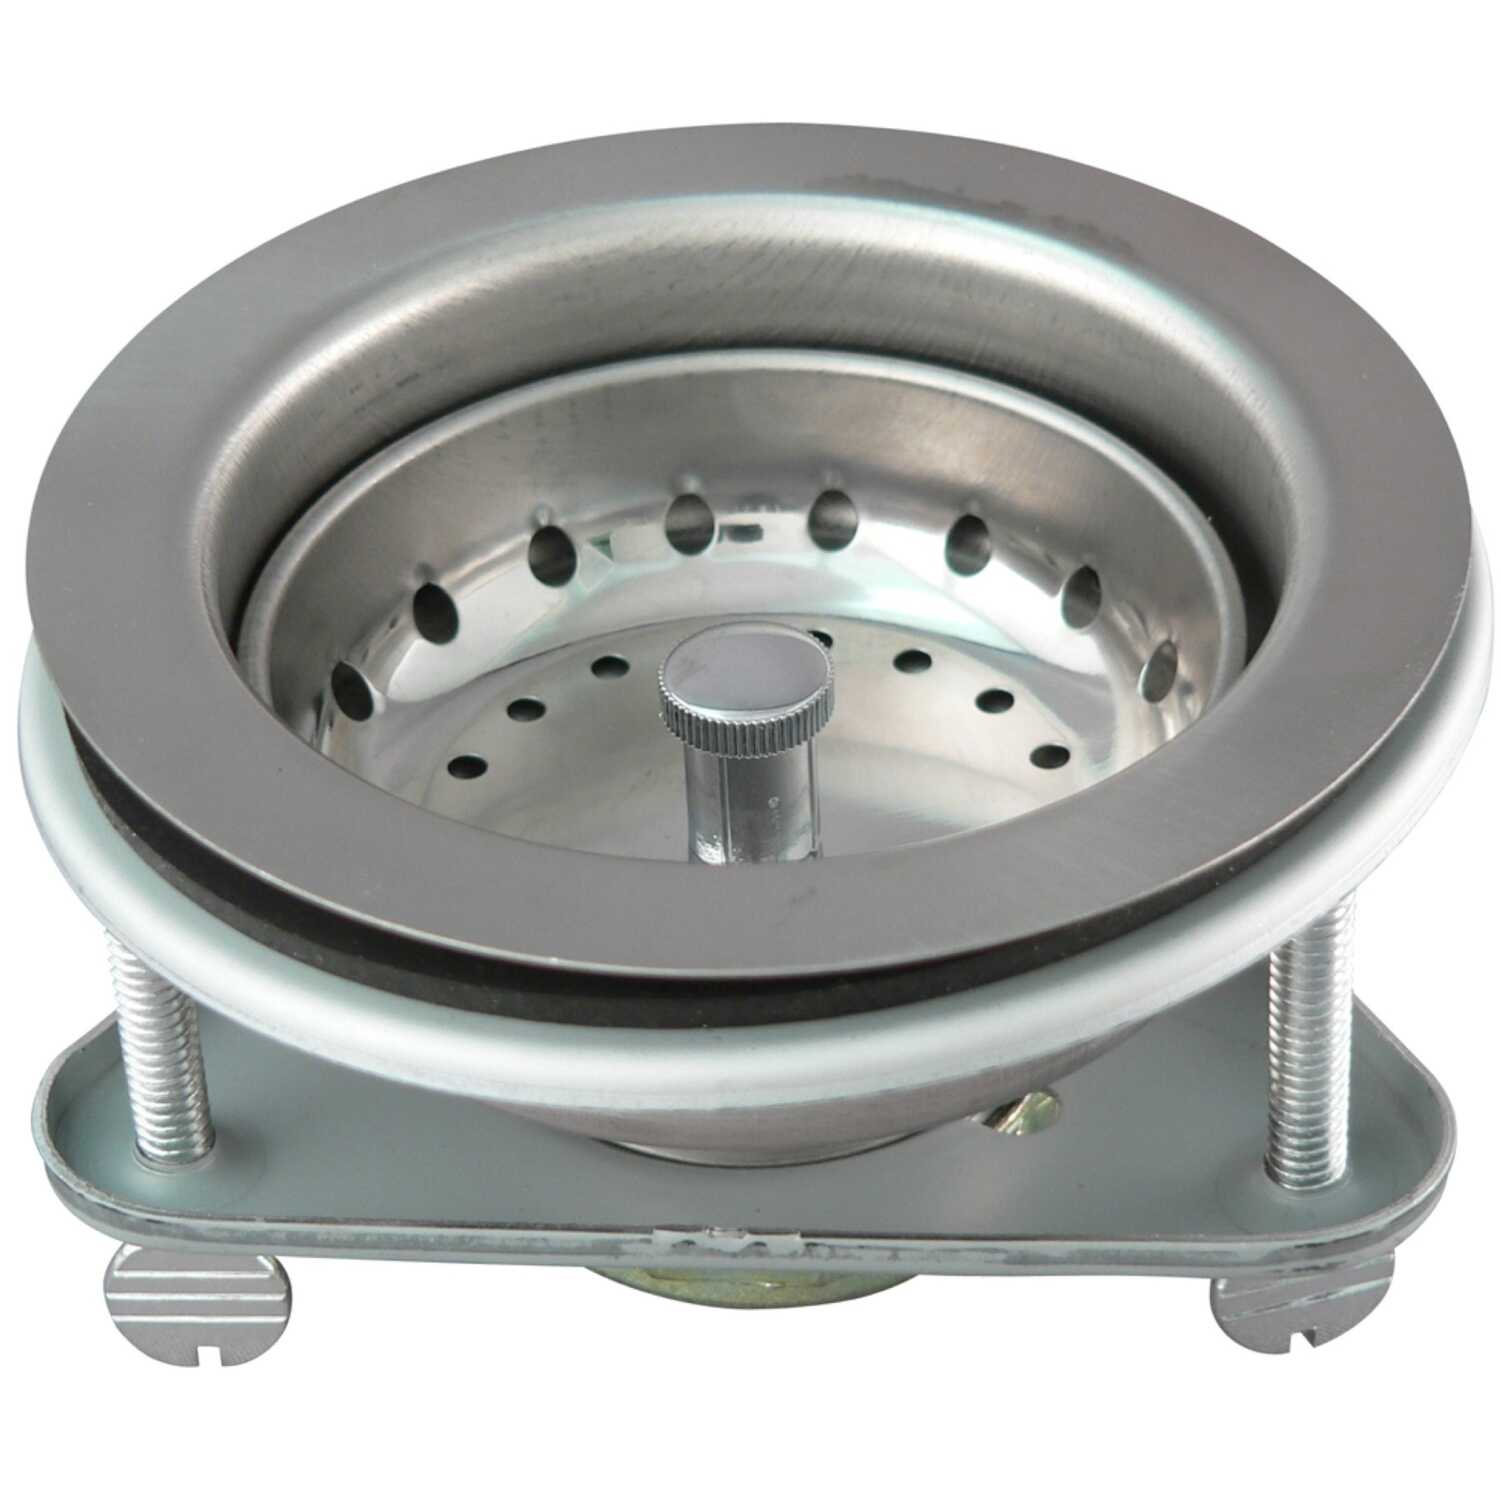 Keeney  3-1/2 in. Dia. Stainless Steel  Basket Strainer Assembly